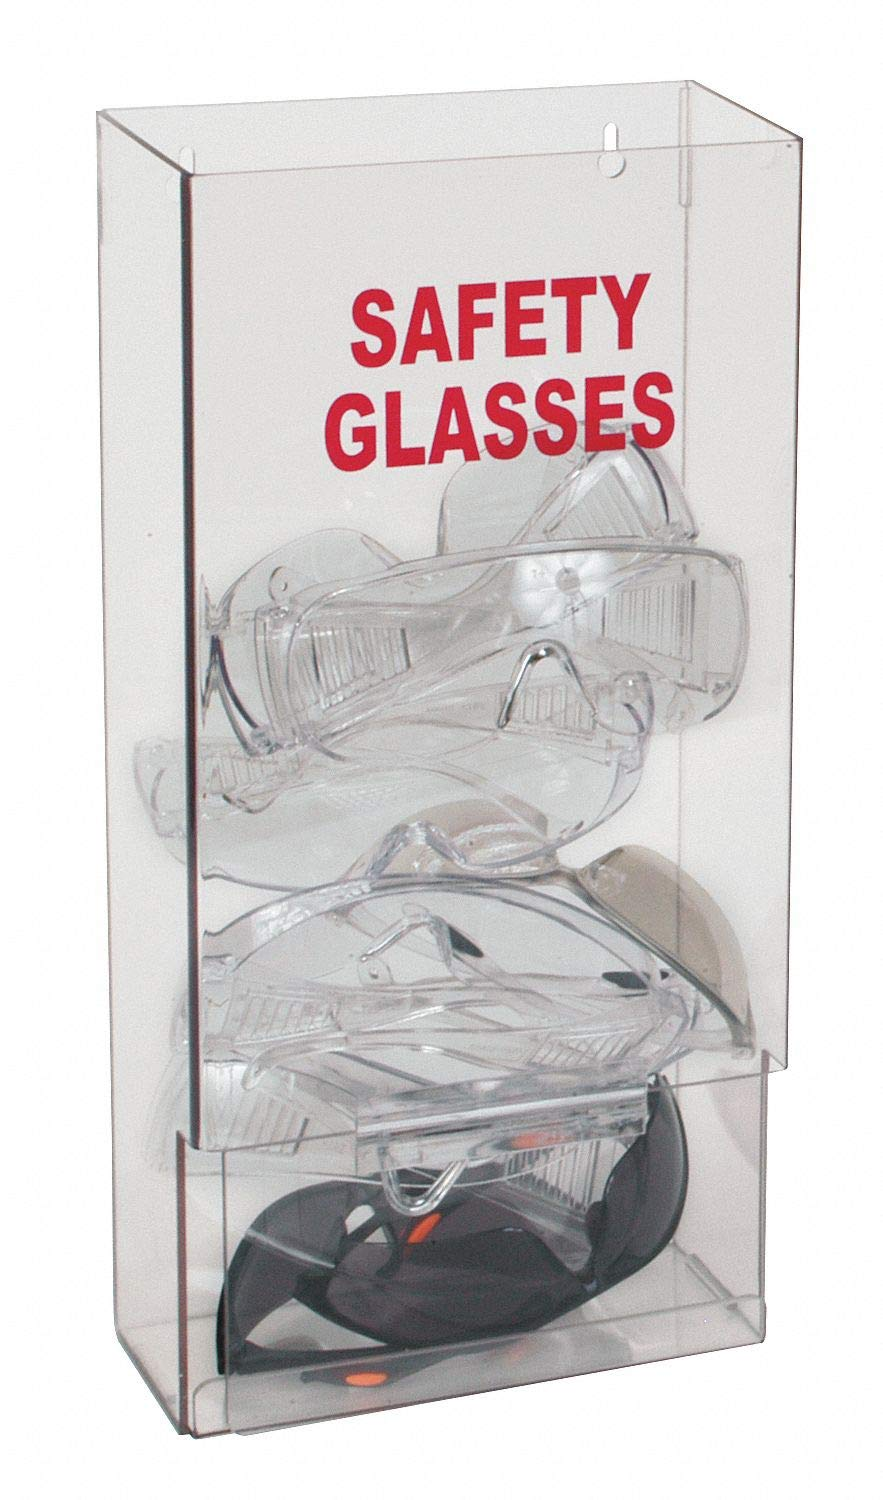 8'' x 4'' x 15-1/4'' PETG Protective Eyewear Dispenser, Clear; Holds Up to (25) Pairs